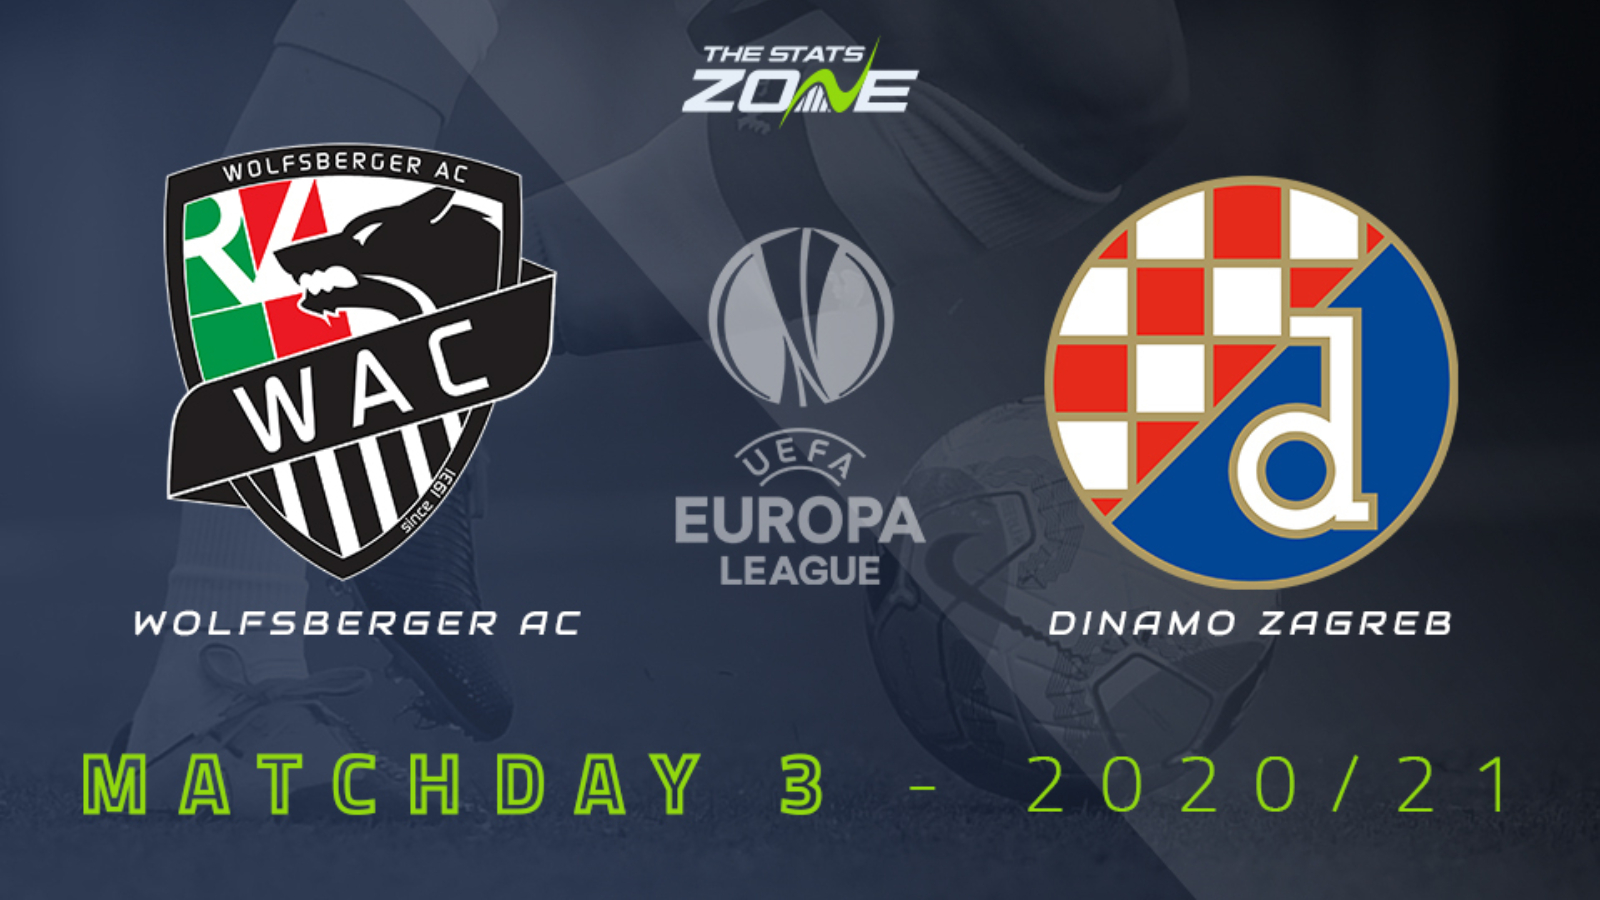 2020 21 Uefa Europa League Wolfsberger Ac Vs Dinamo Zagreb Preview Prediction The Stats Zone